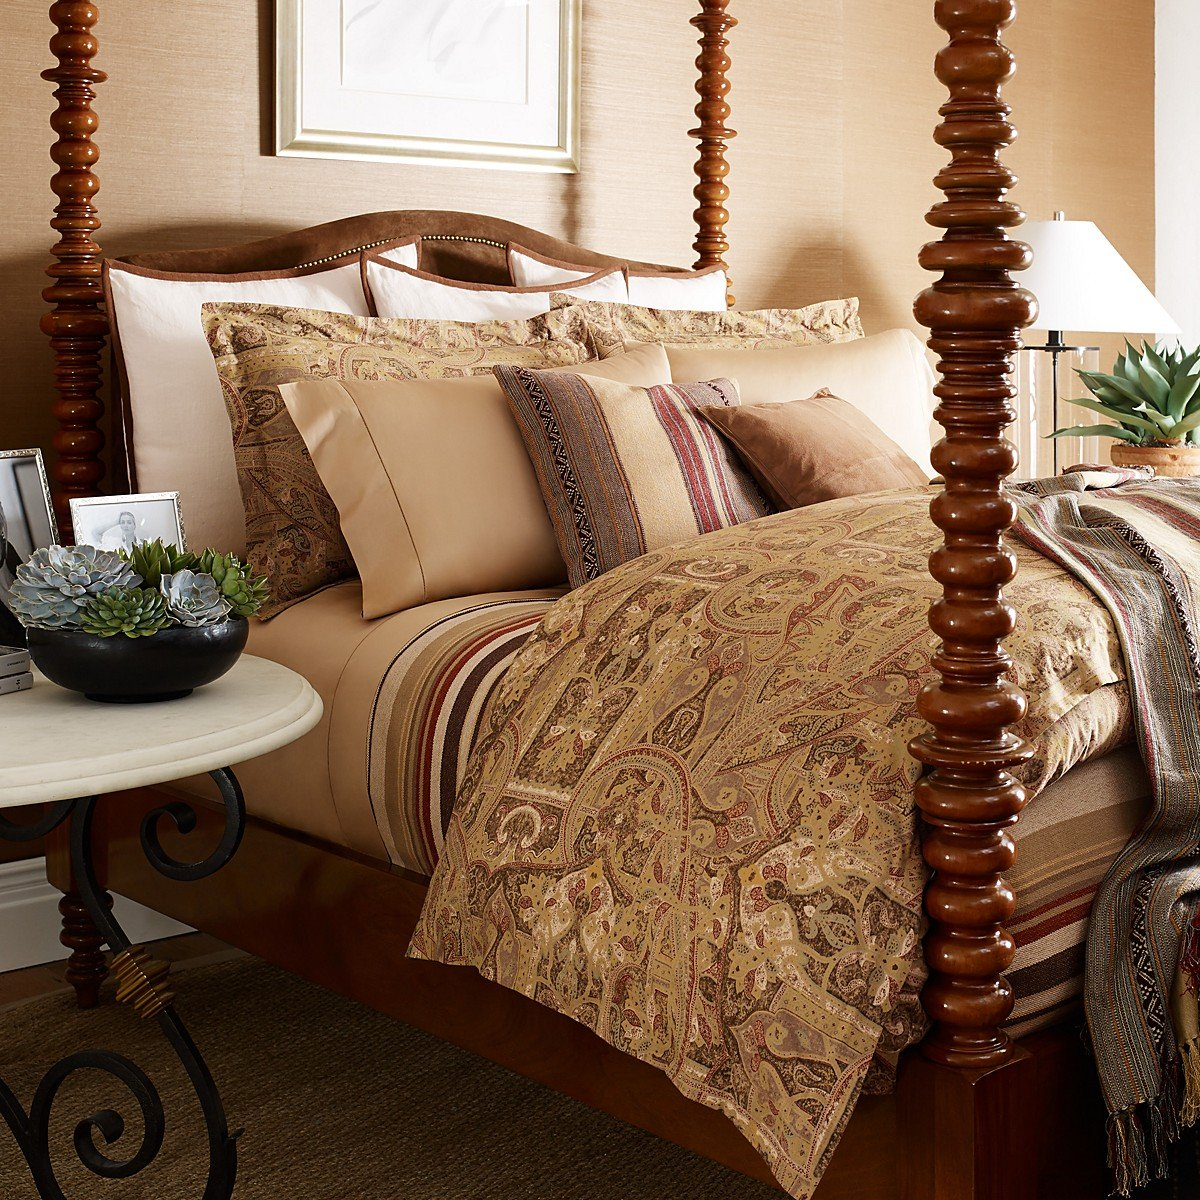 bedding polo ralph excellence lauren bear clearance comforter set sets covers noble duvet cover floral